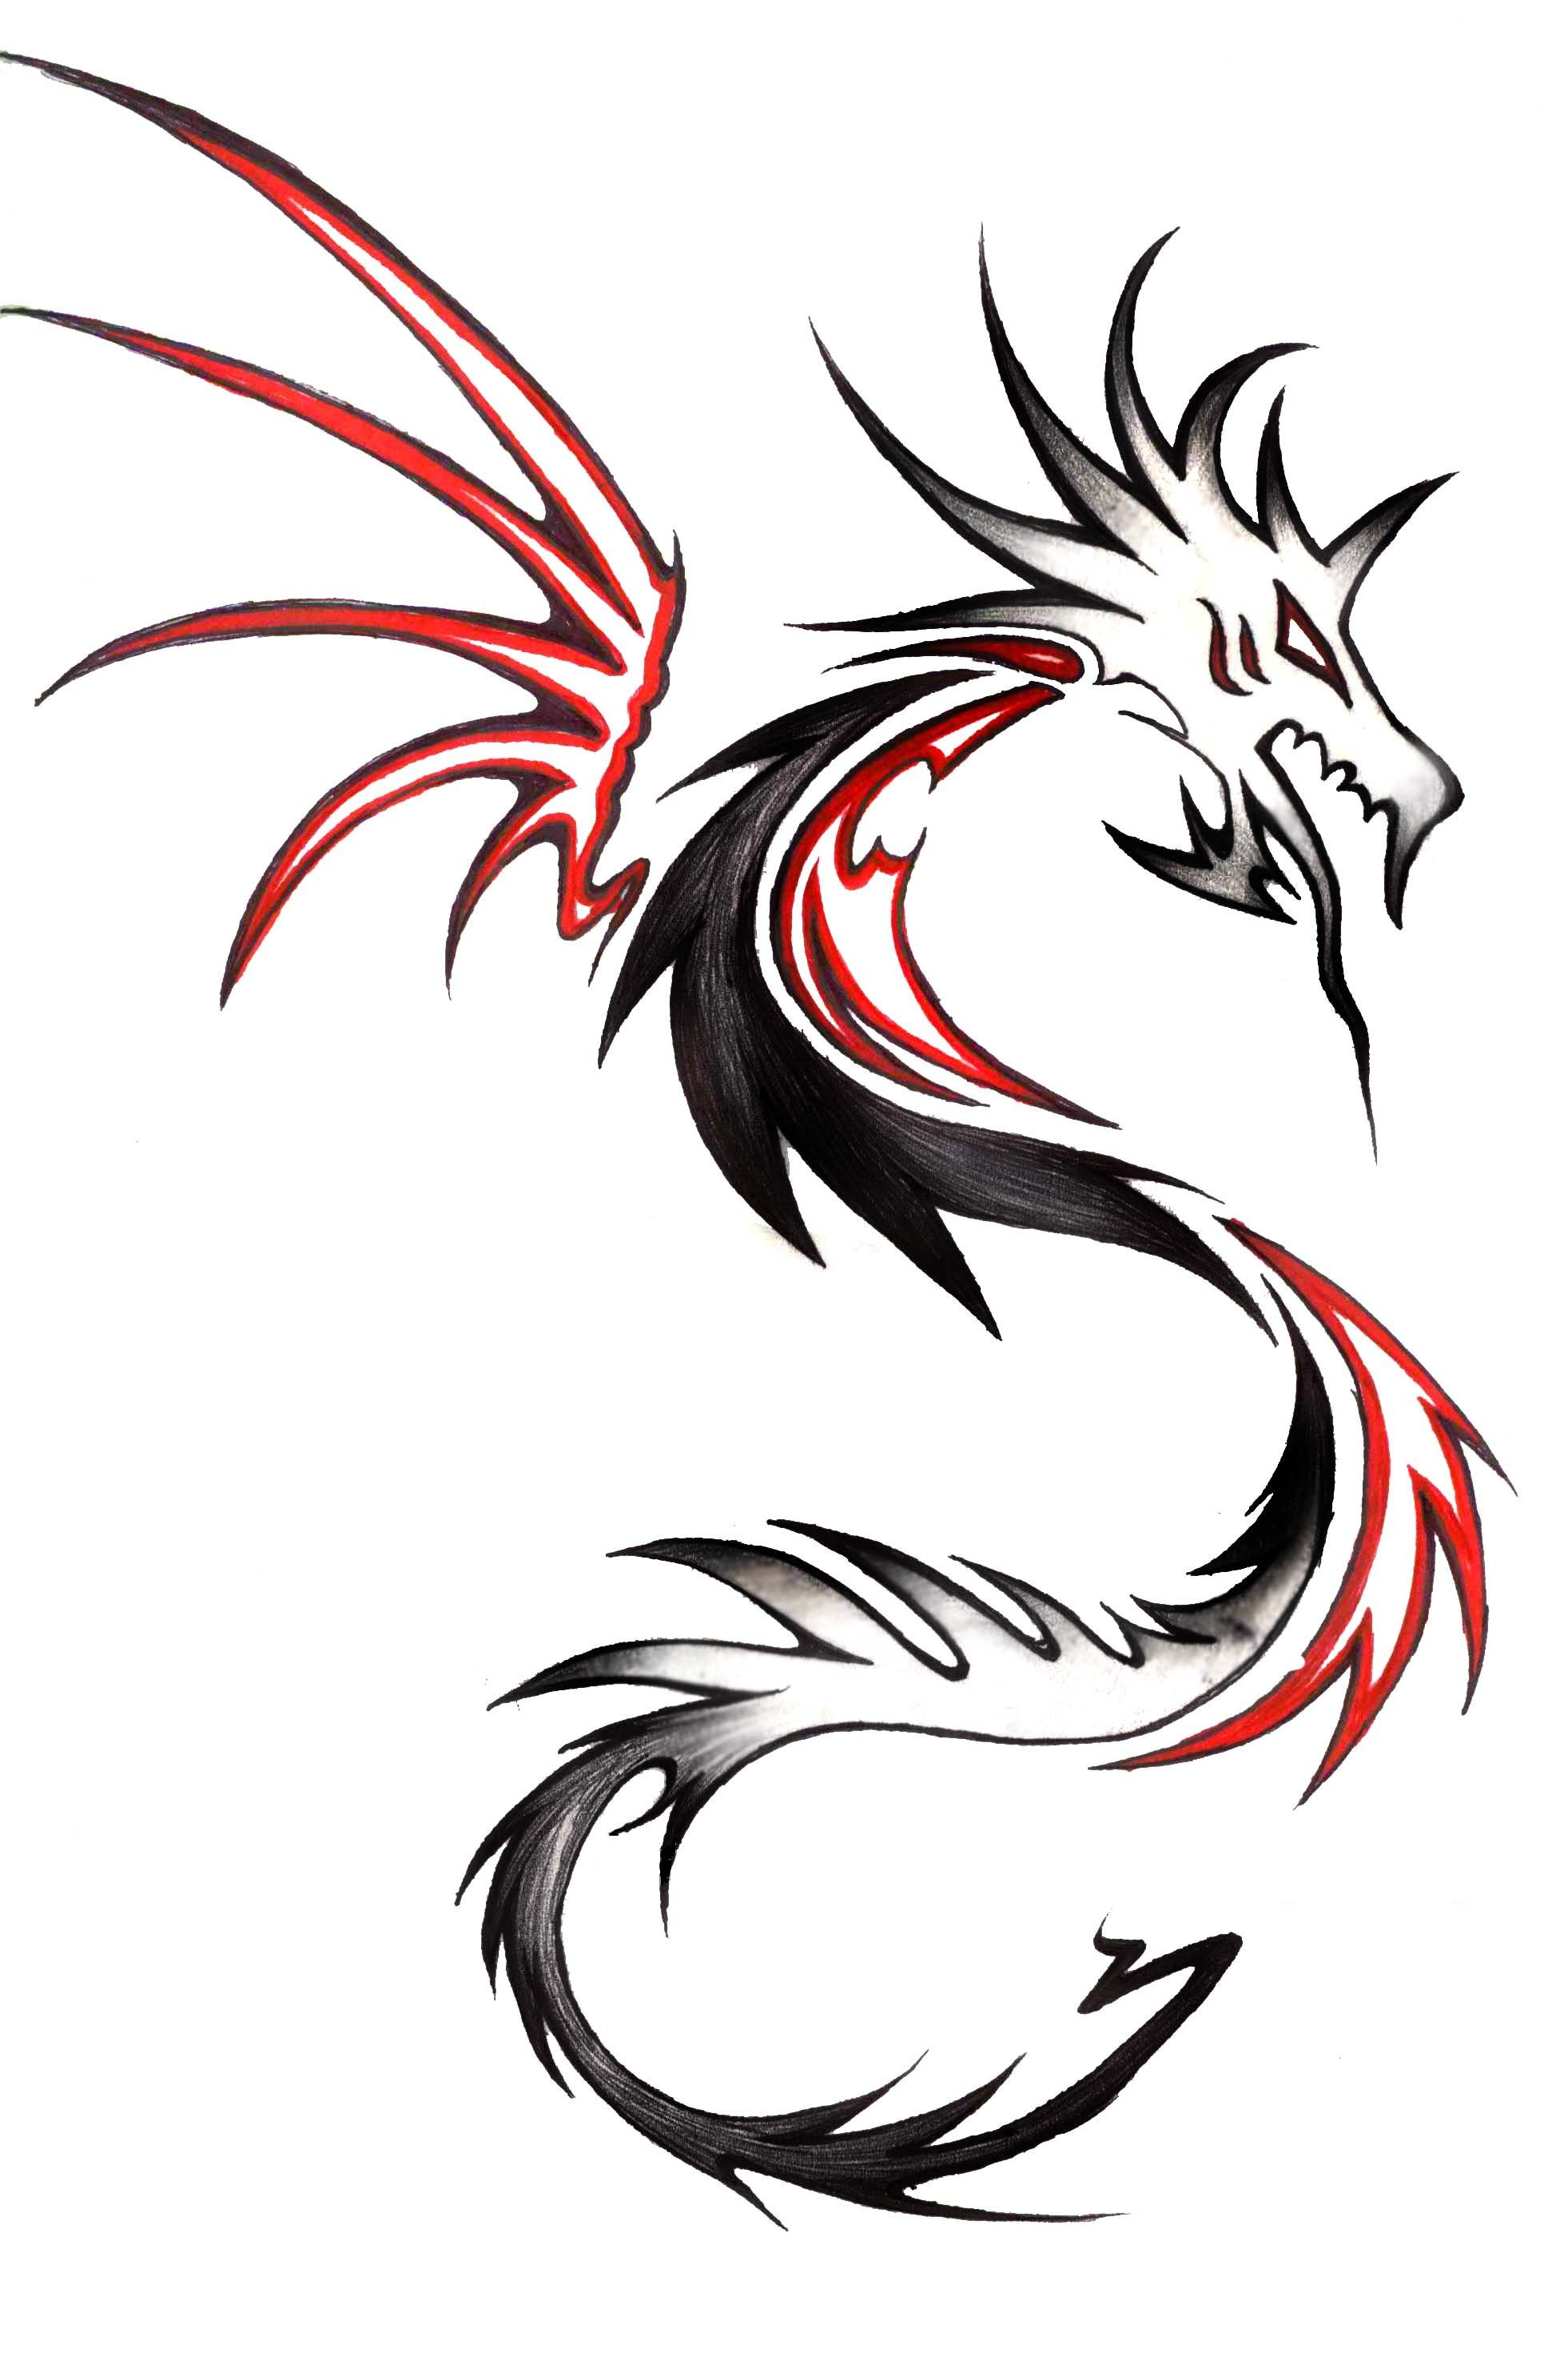 Fill In The Whites With The Surrounding Color Making The Segments Solid Fill Maybe Dragon Tattoo Tribal Dragon Tattoos Dragon Tattoo Hd